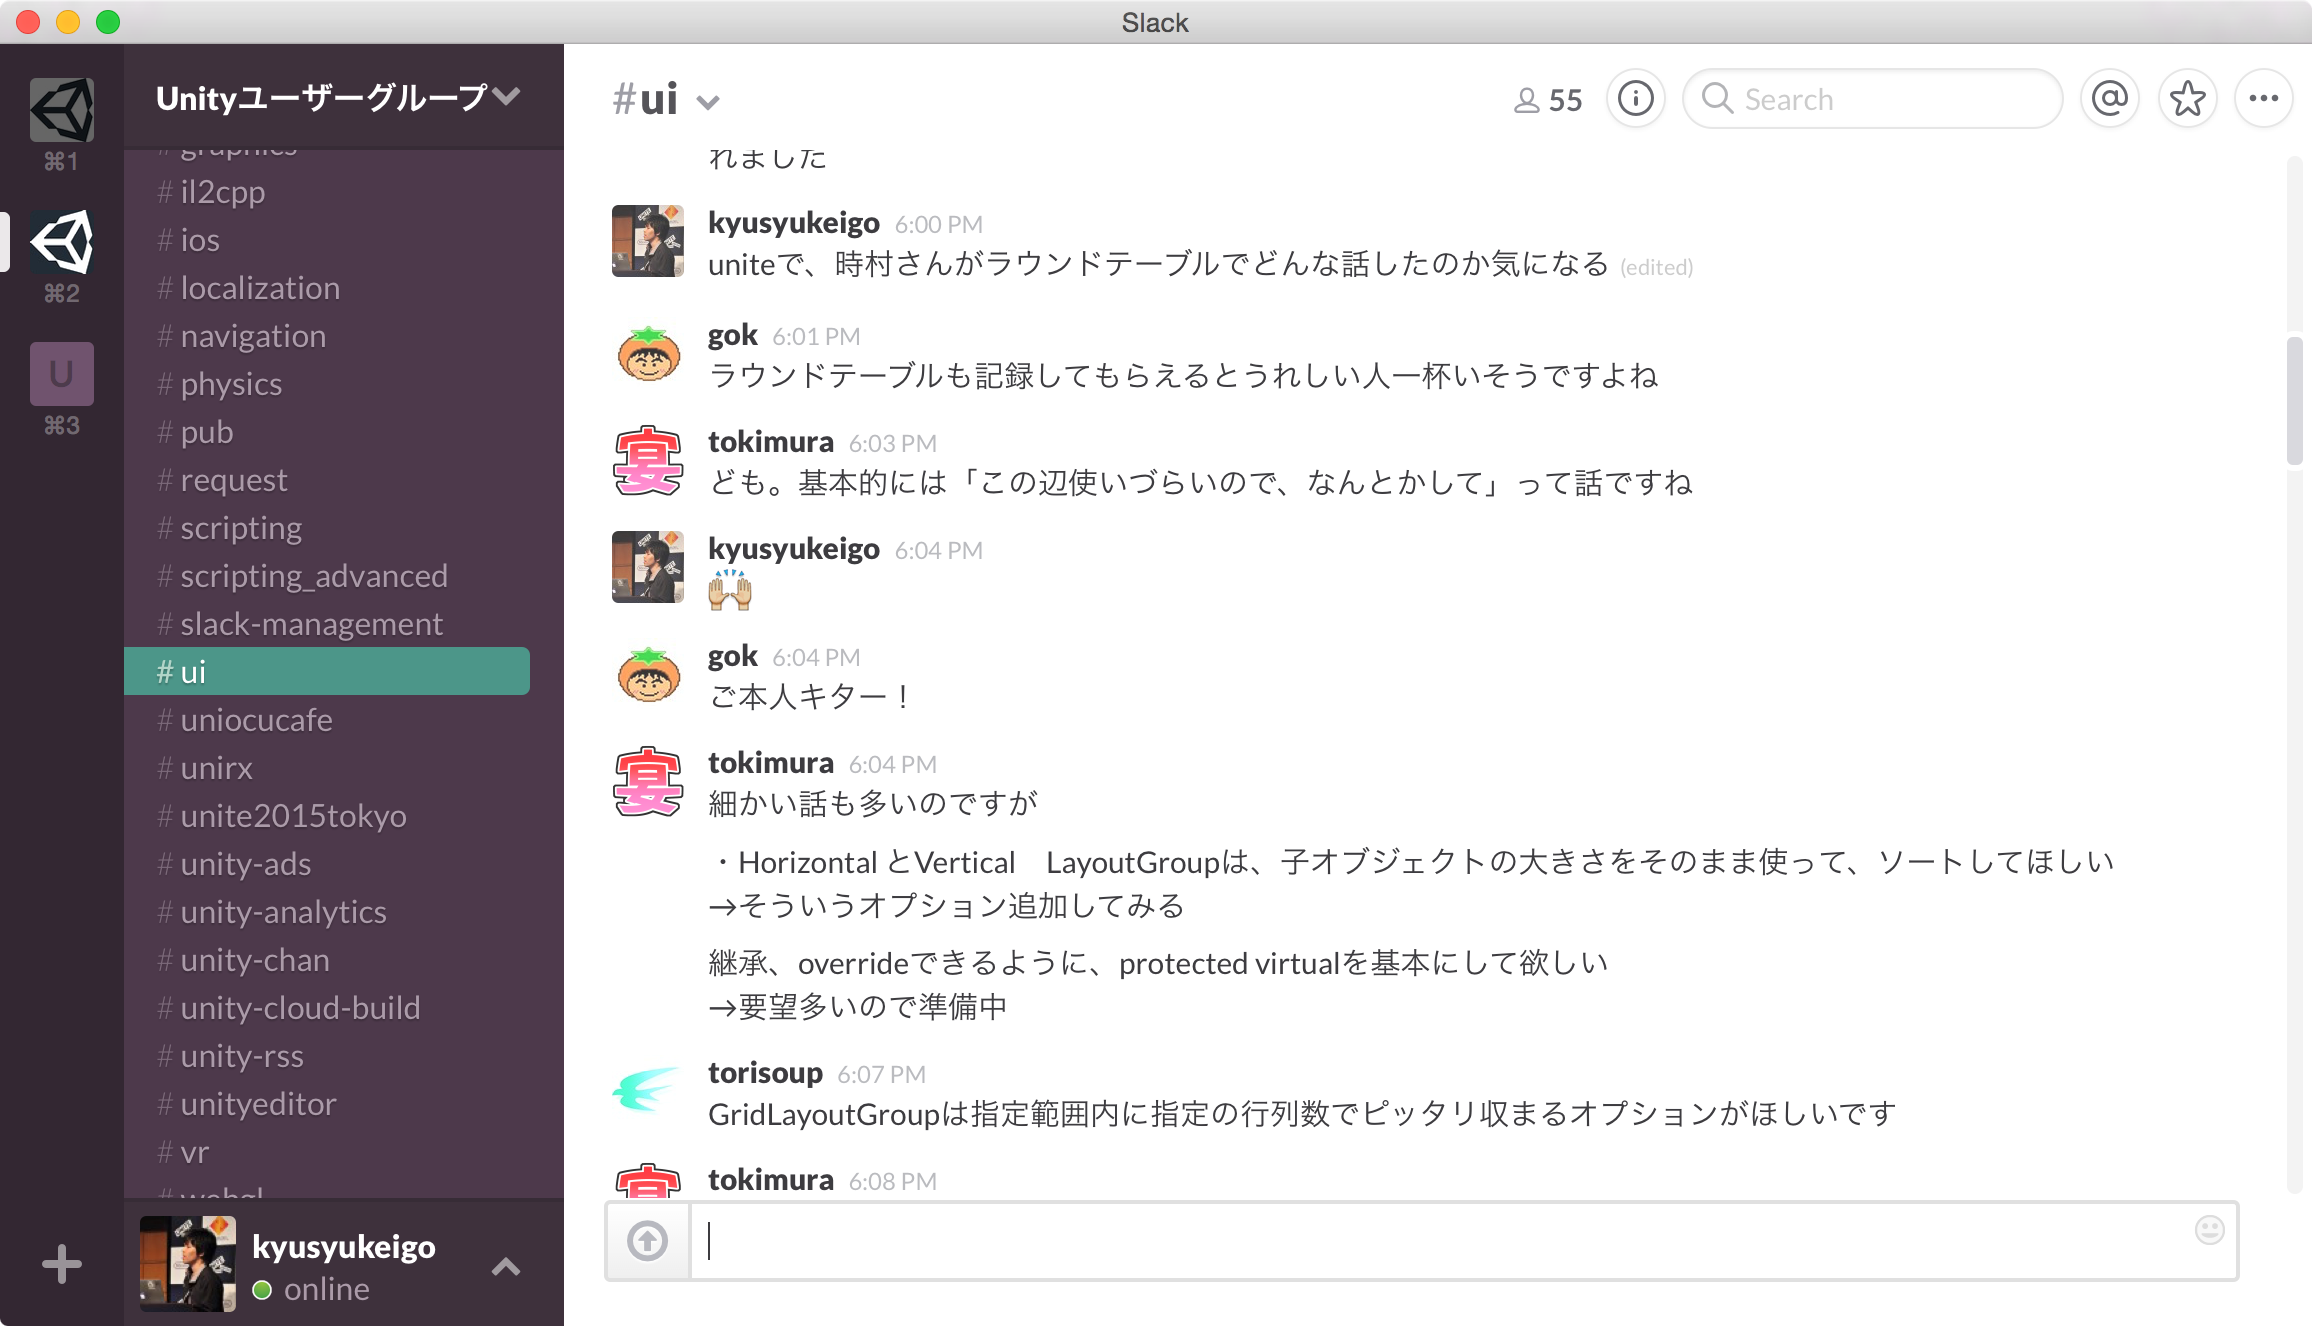 ss 2015-04-23 1.58.30.png